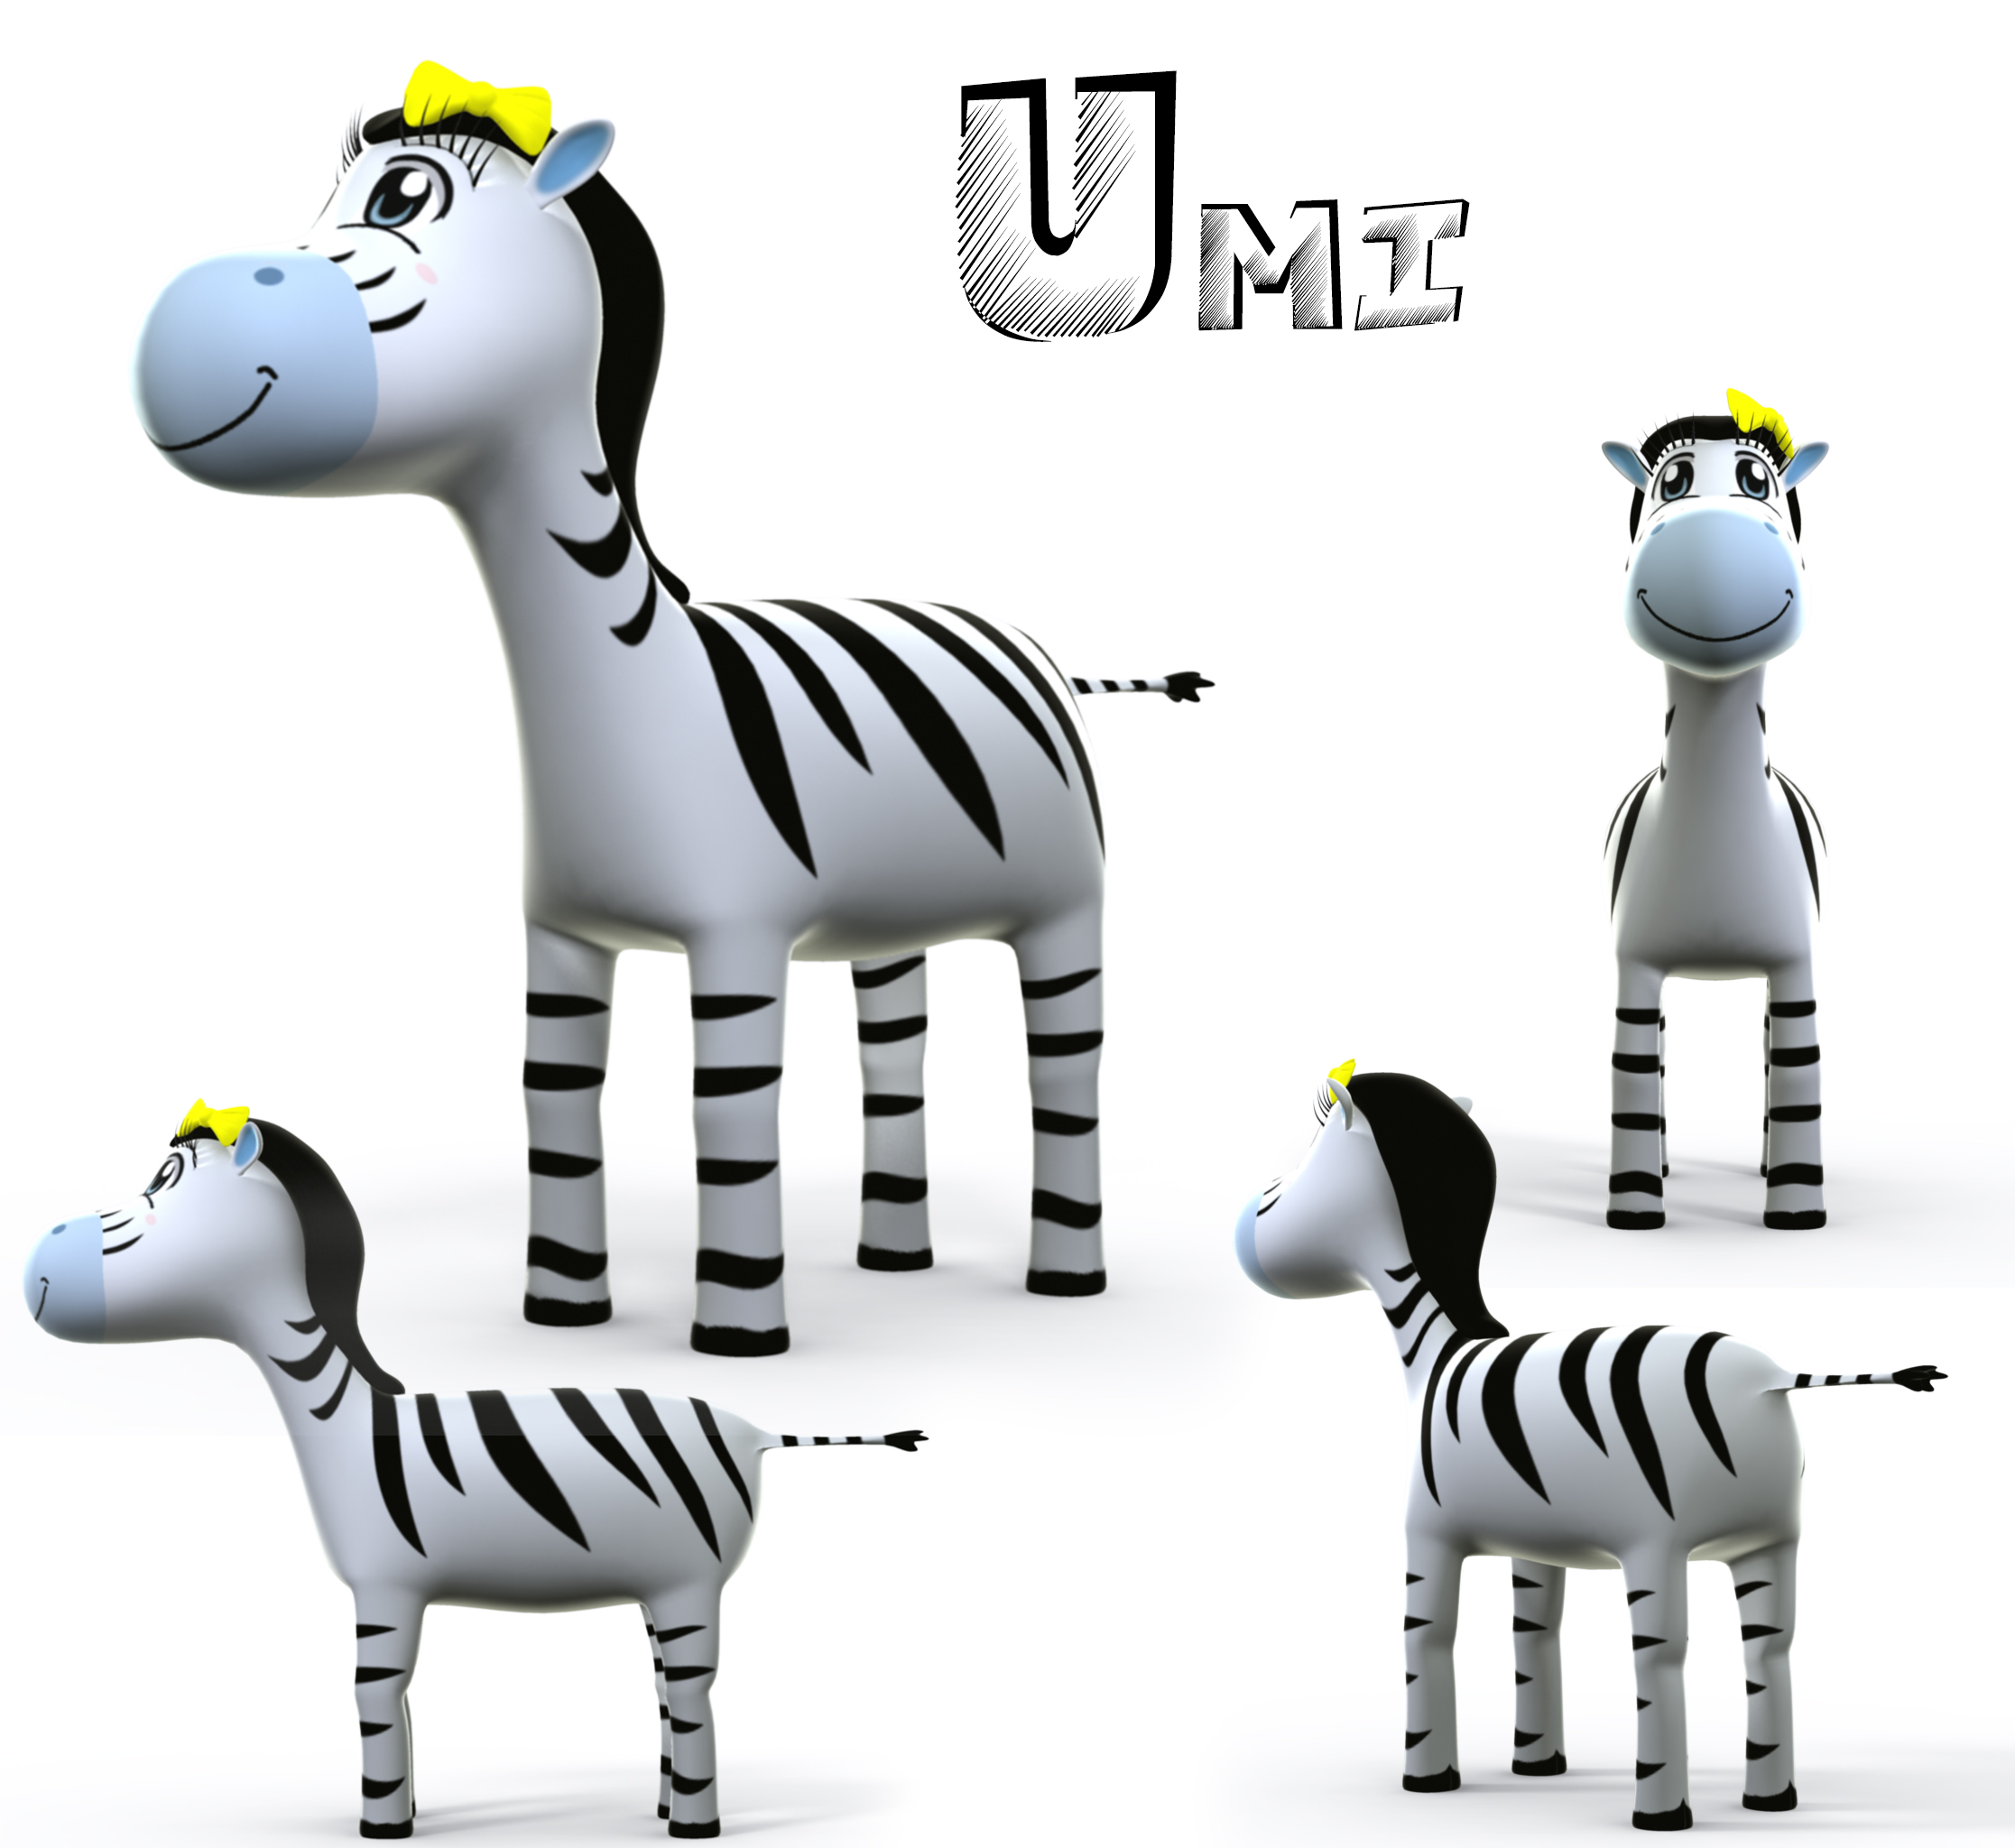 The first version of Umi from Learn Safari